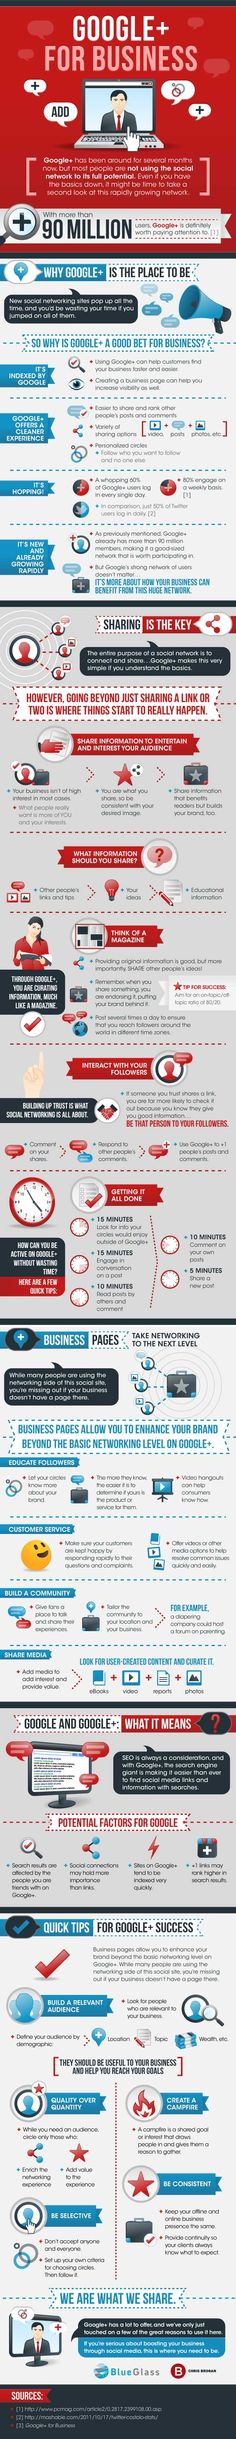 Google+ for Business: what is it good for? [infographic]